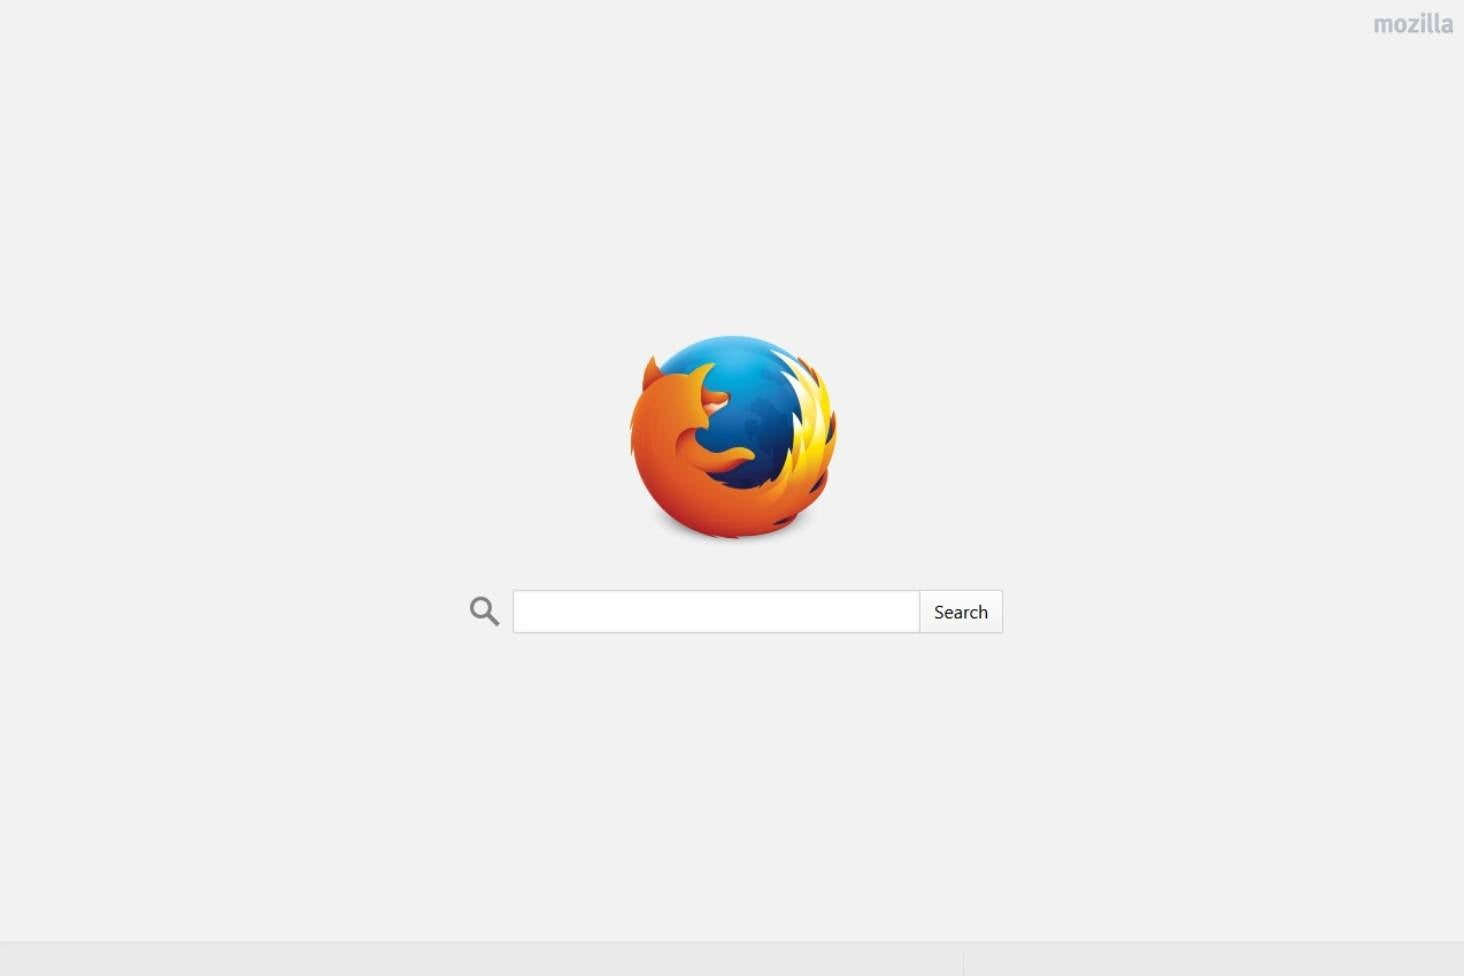 Hackers use dodgy web ads in Firefox to steal your files